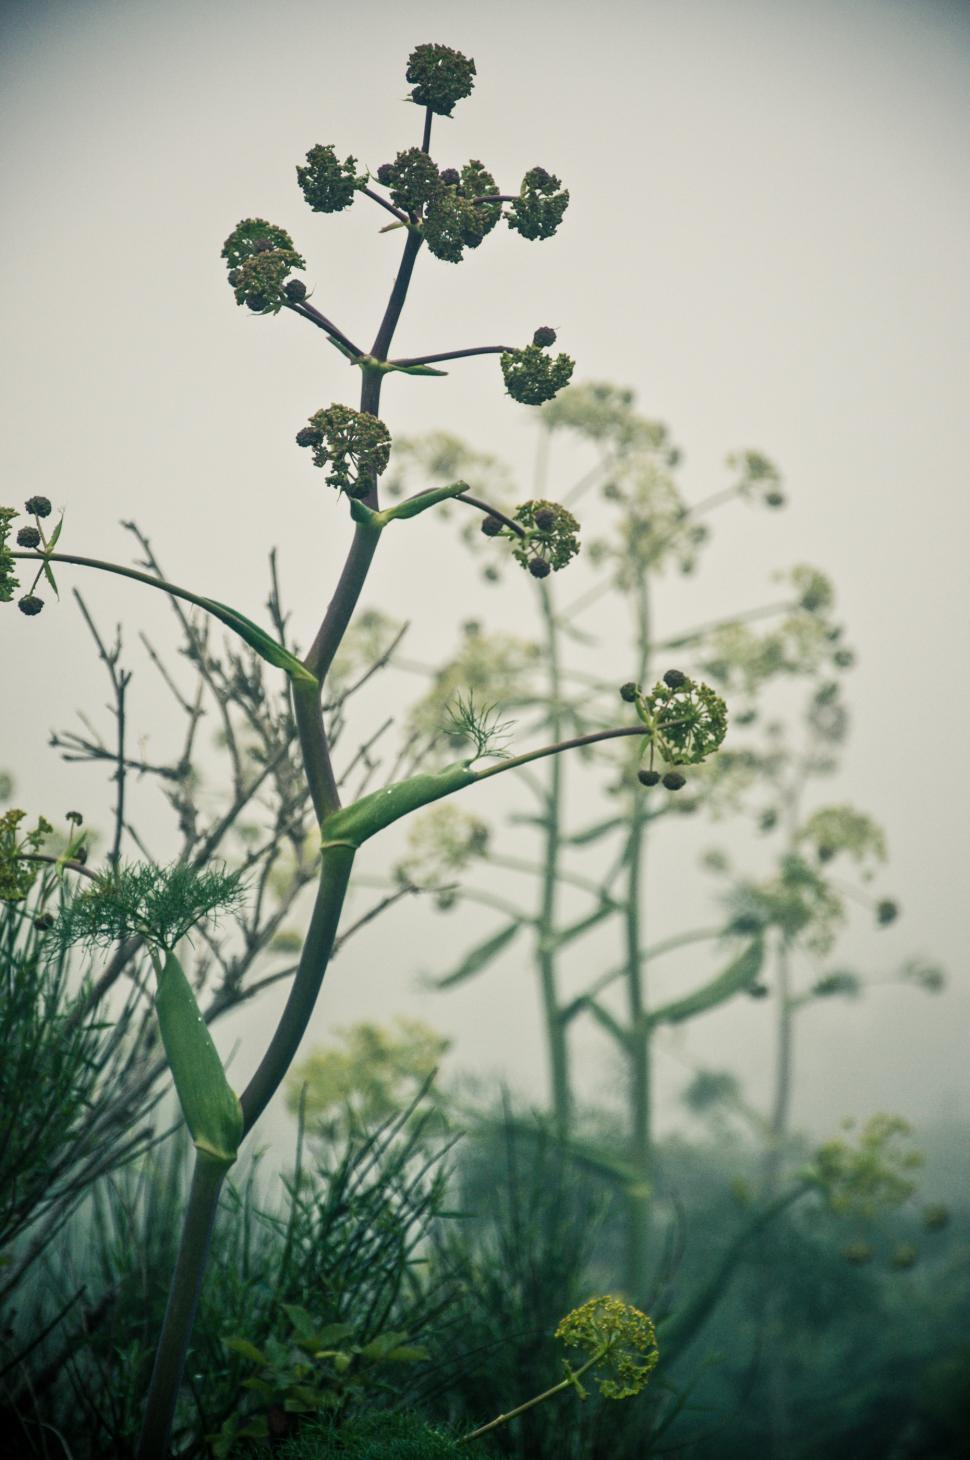 Download Free Stock HD Photo of Plants in the mist Online